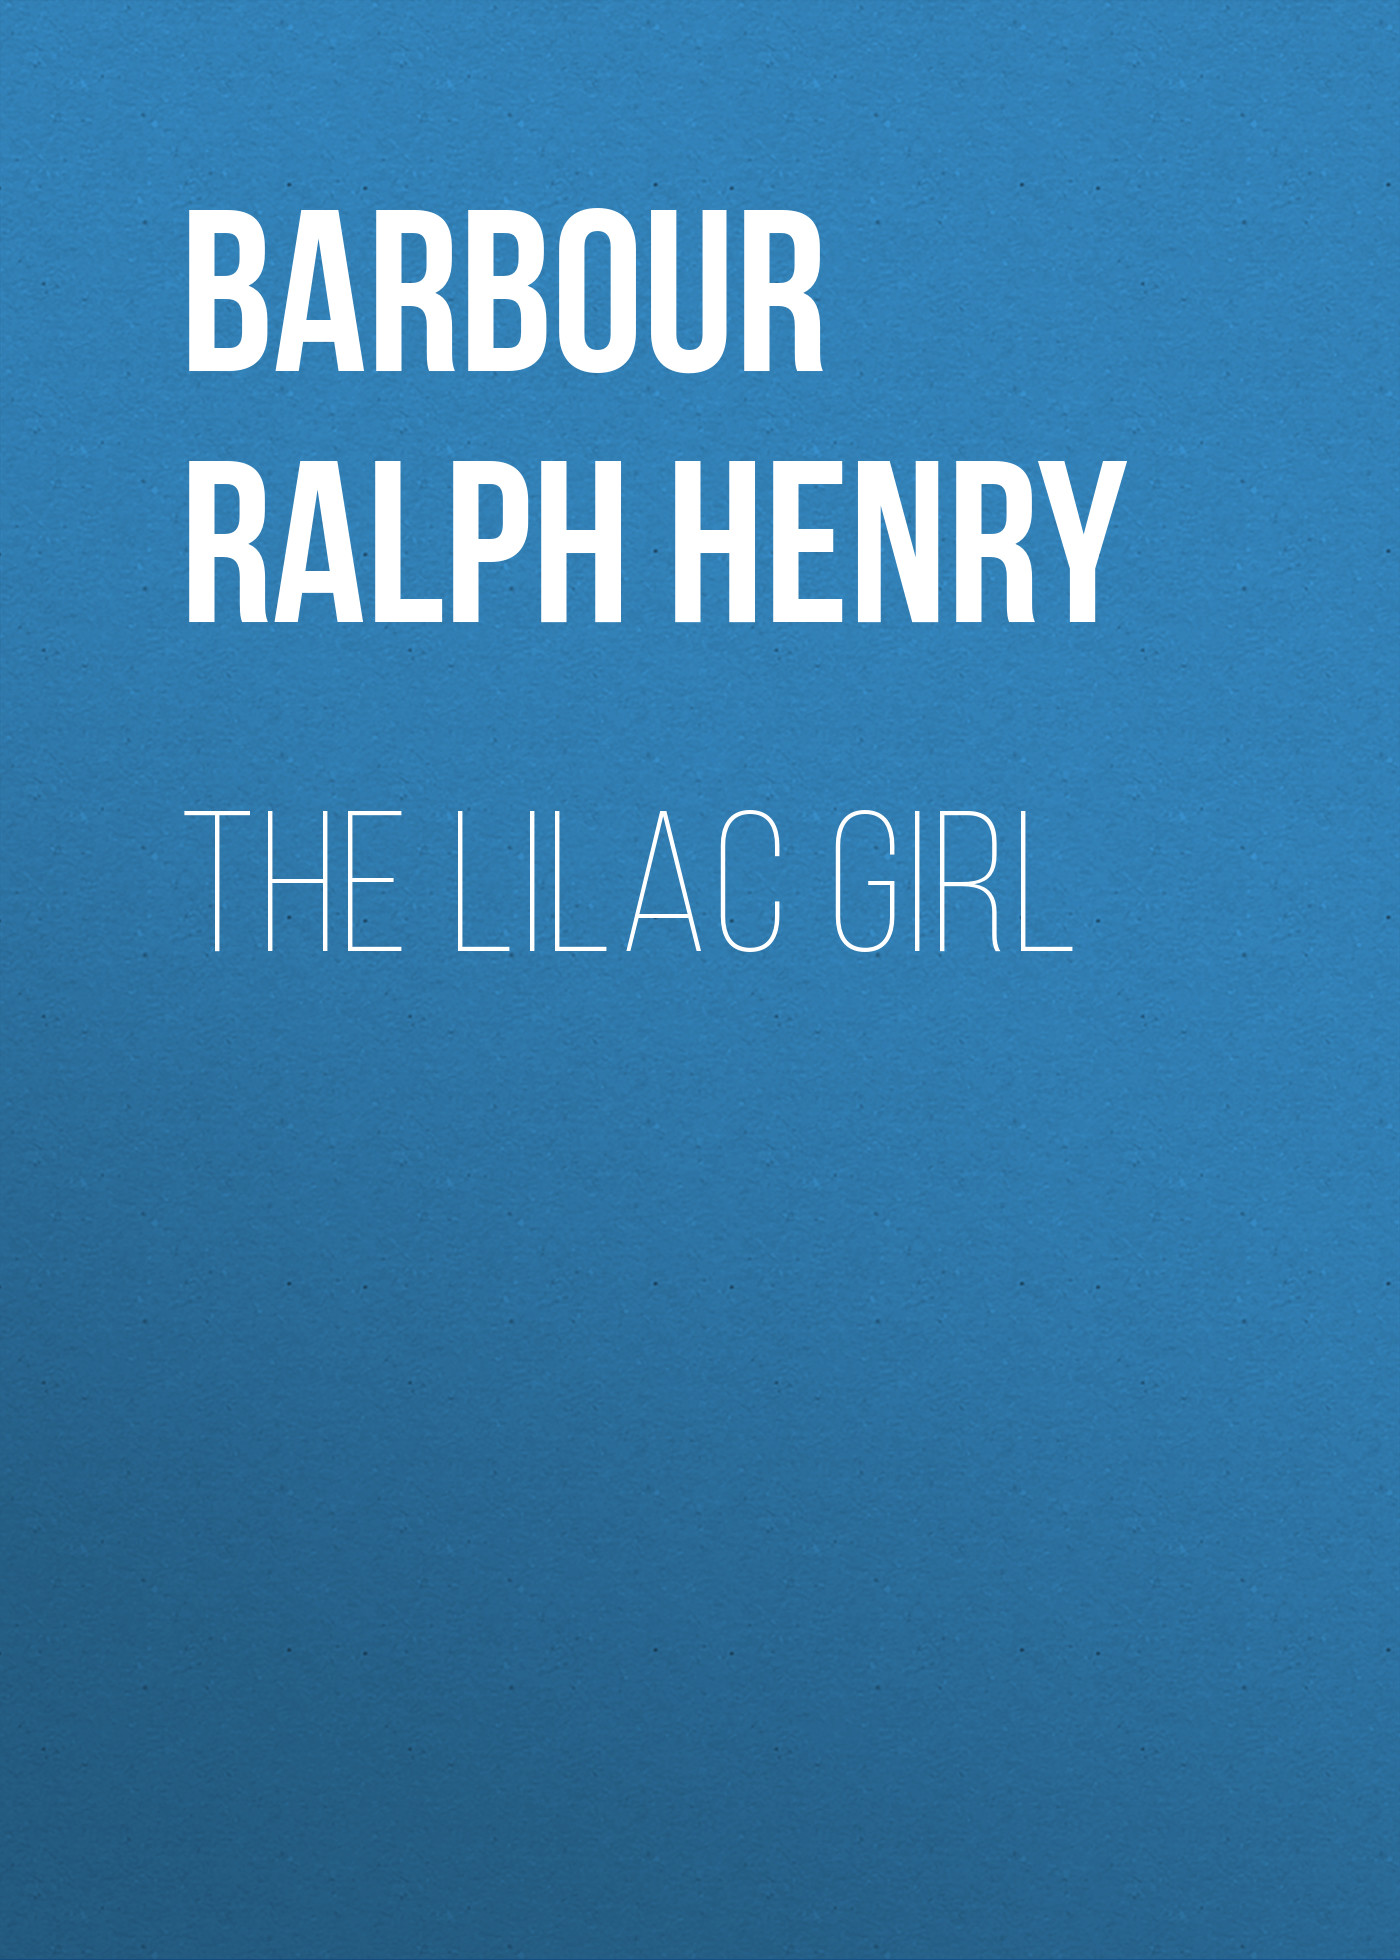 Barbour Ralph Henry The Lilac Girl